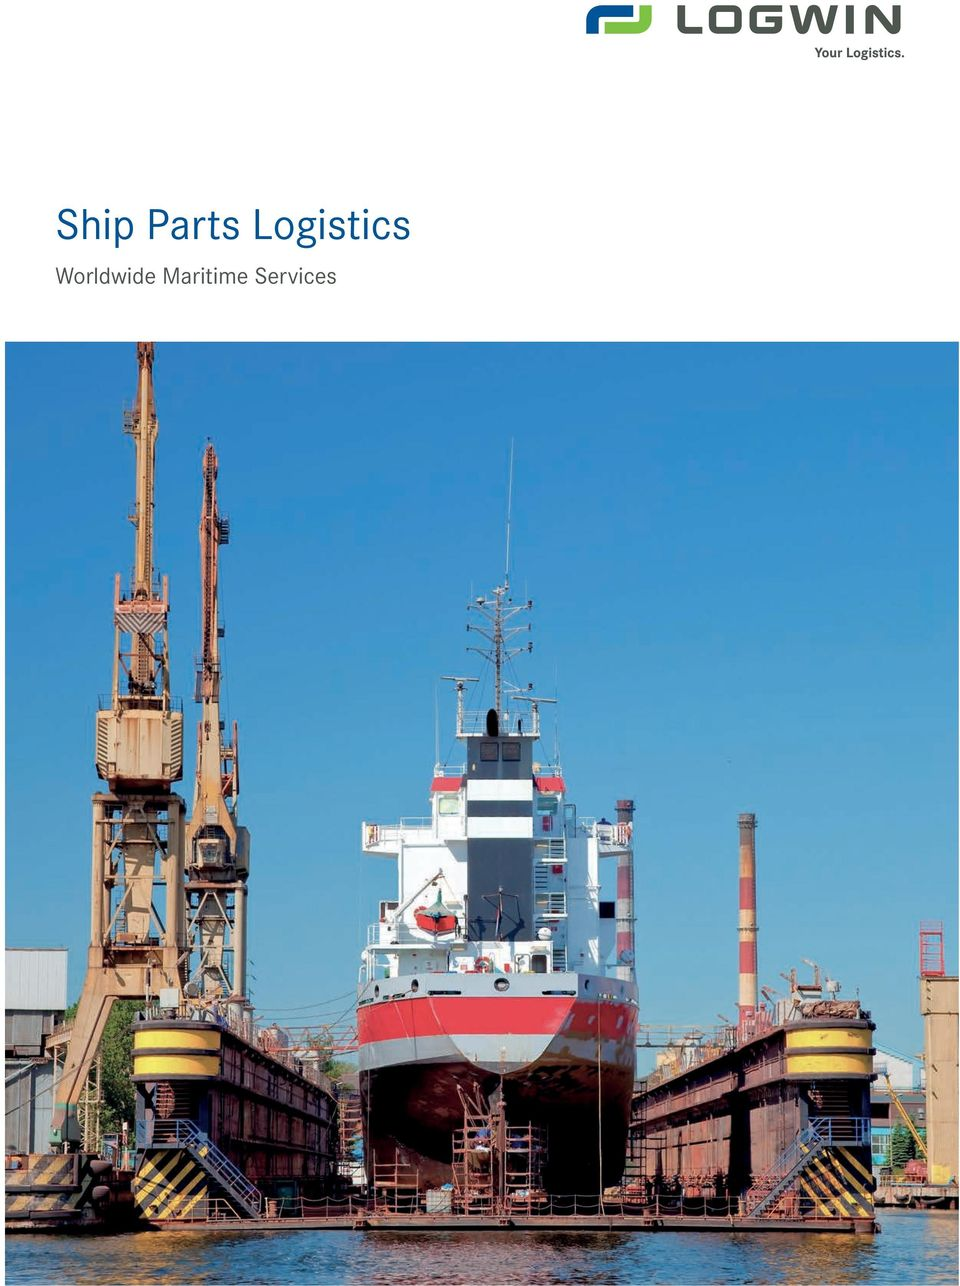 Ship Parts Logistics  Worldwide Maritime Services - PDF